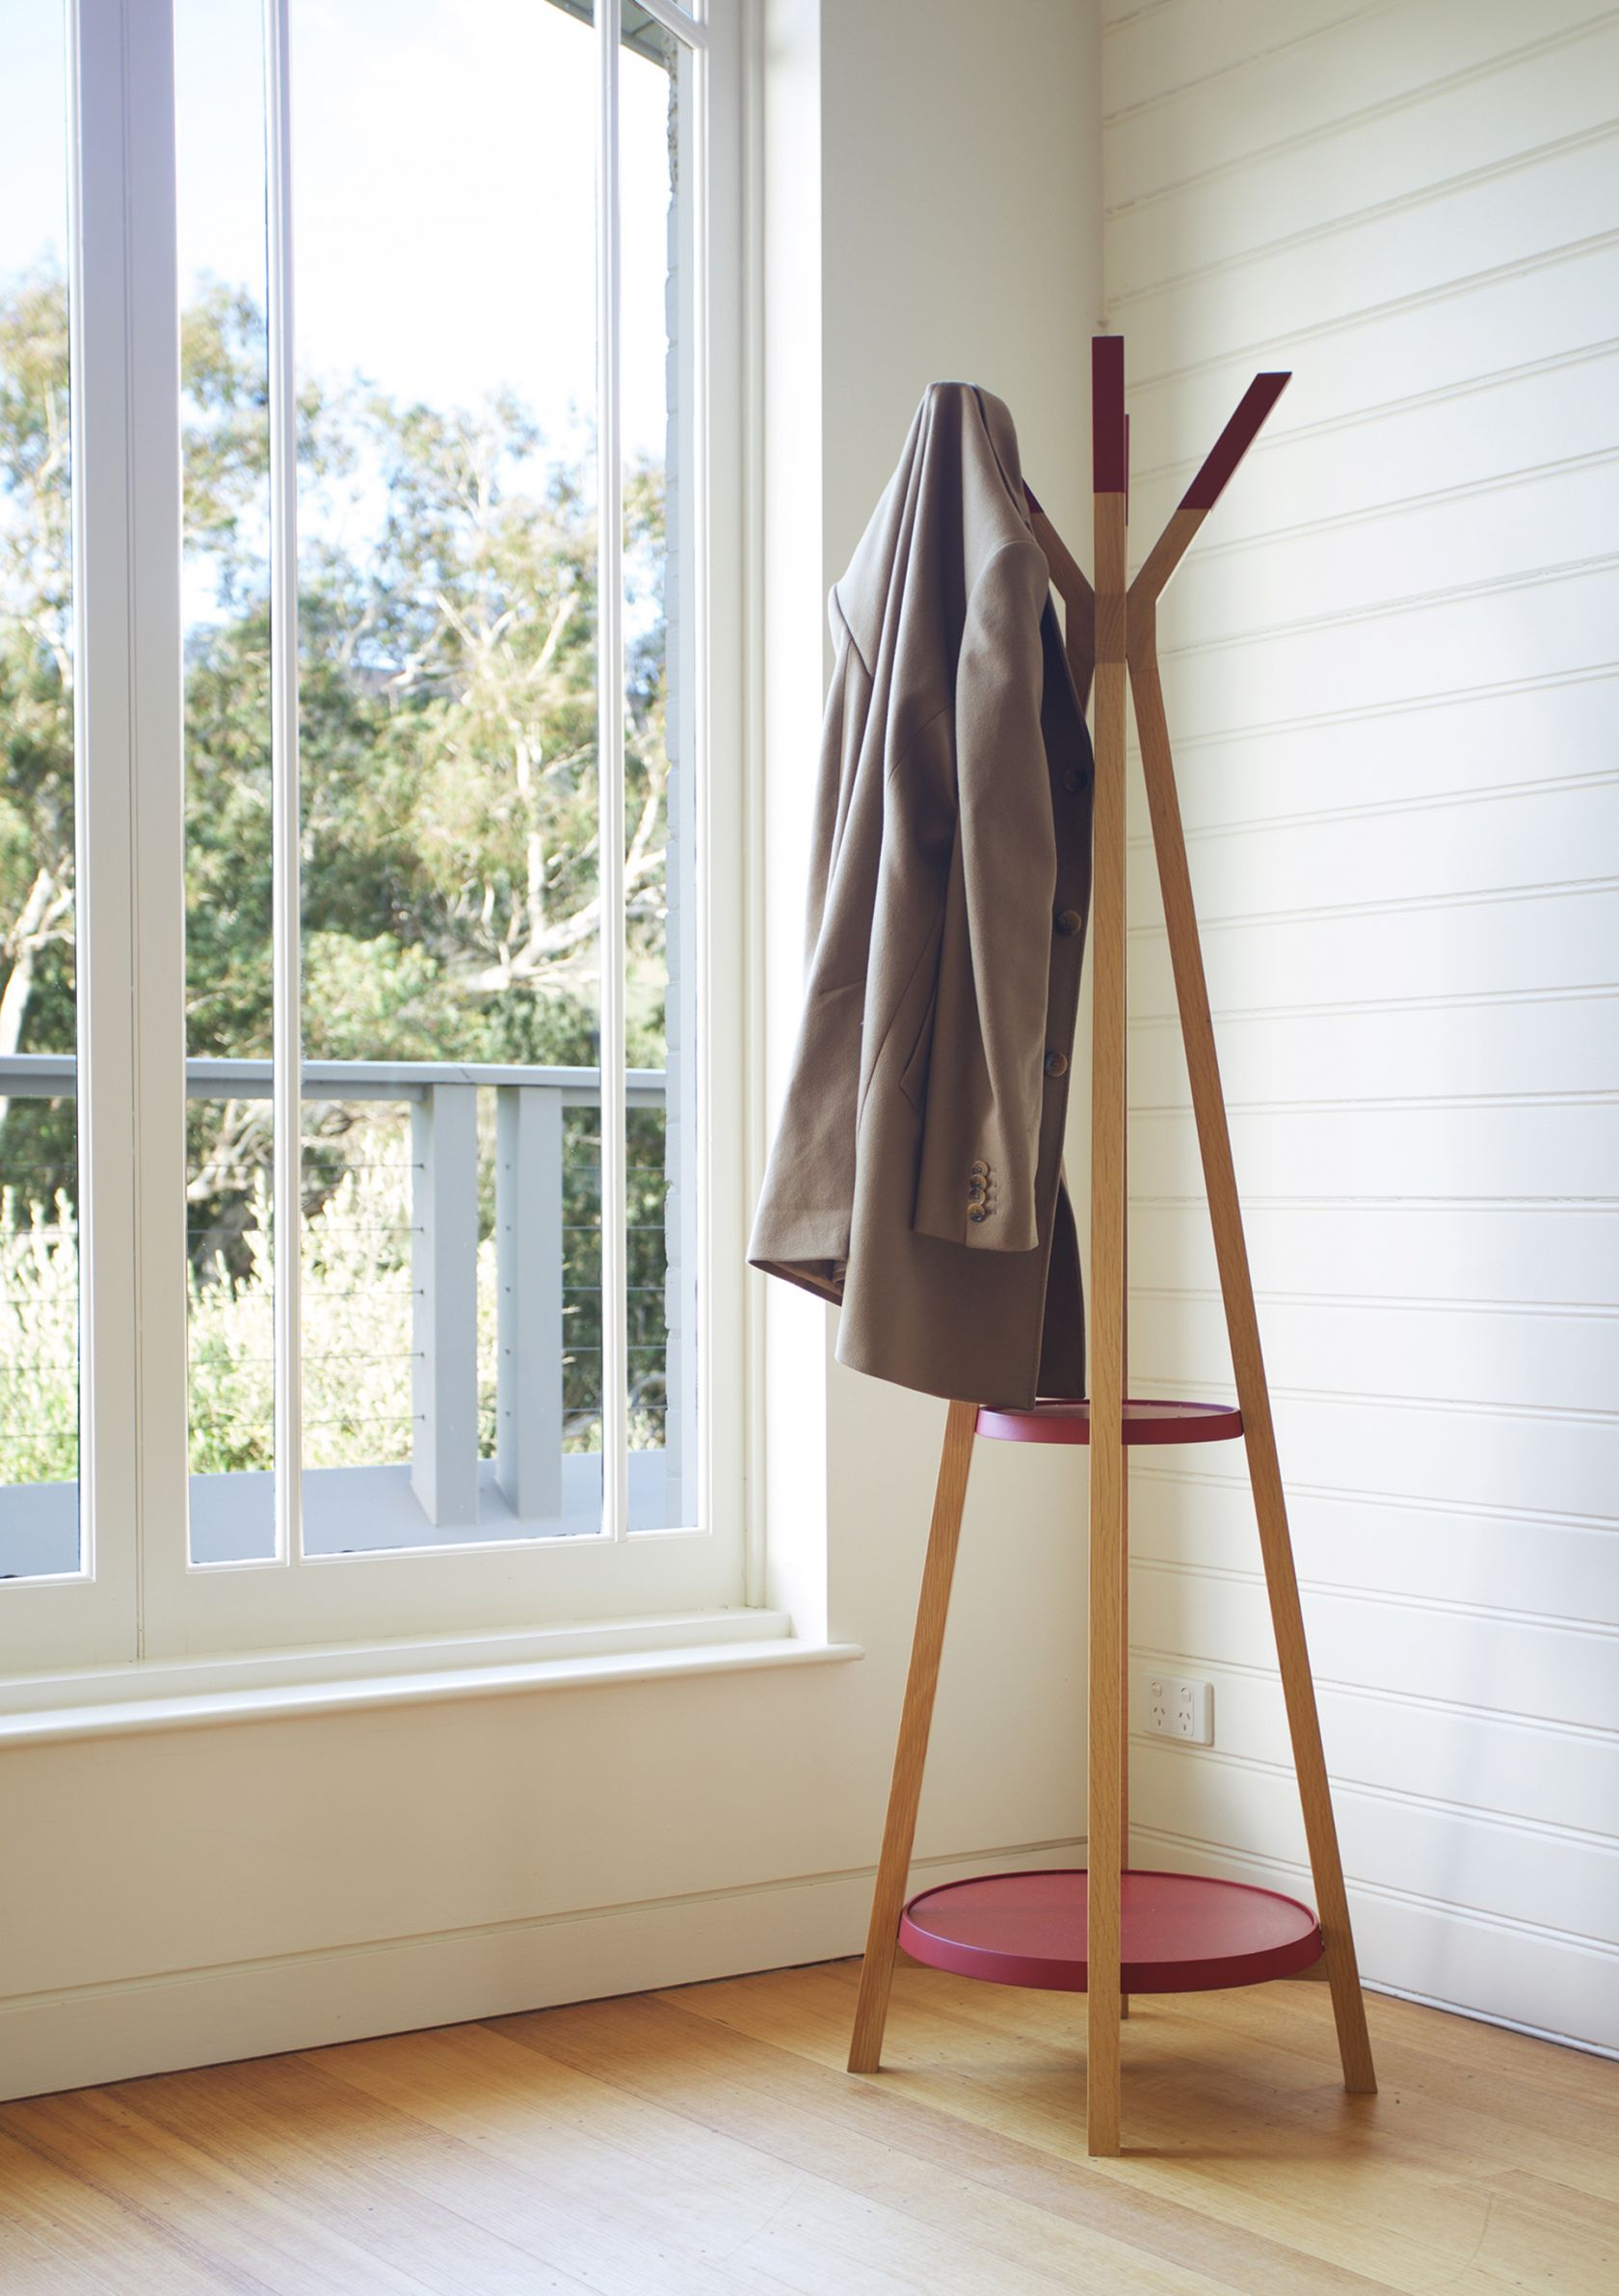 TP with coat hanging P